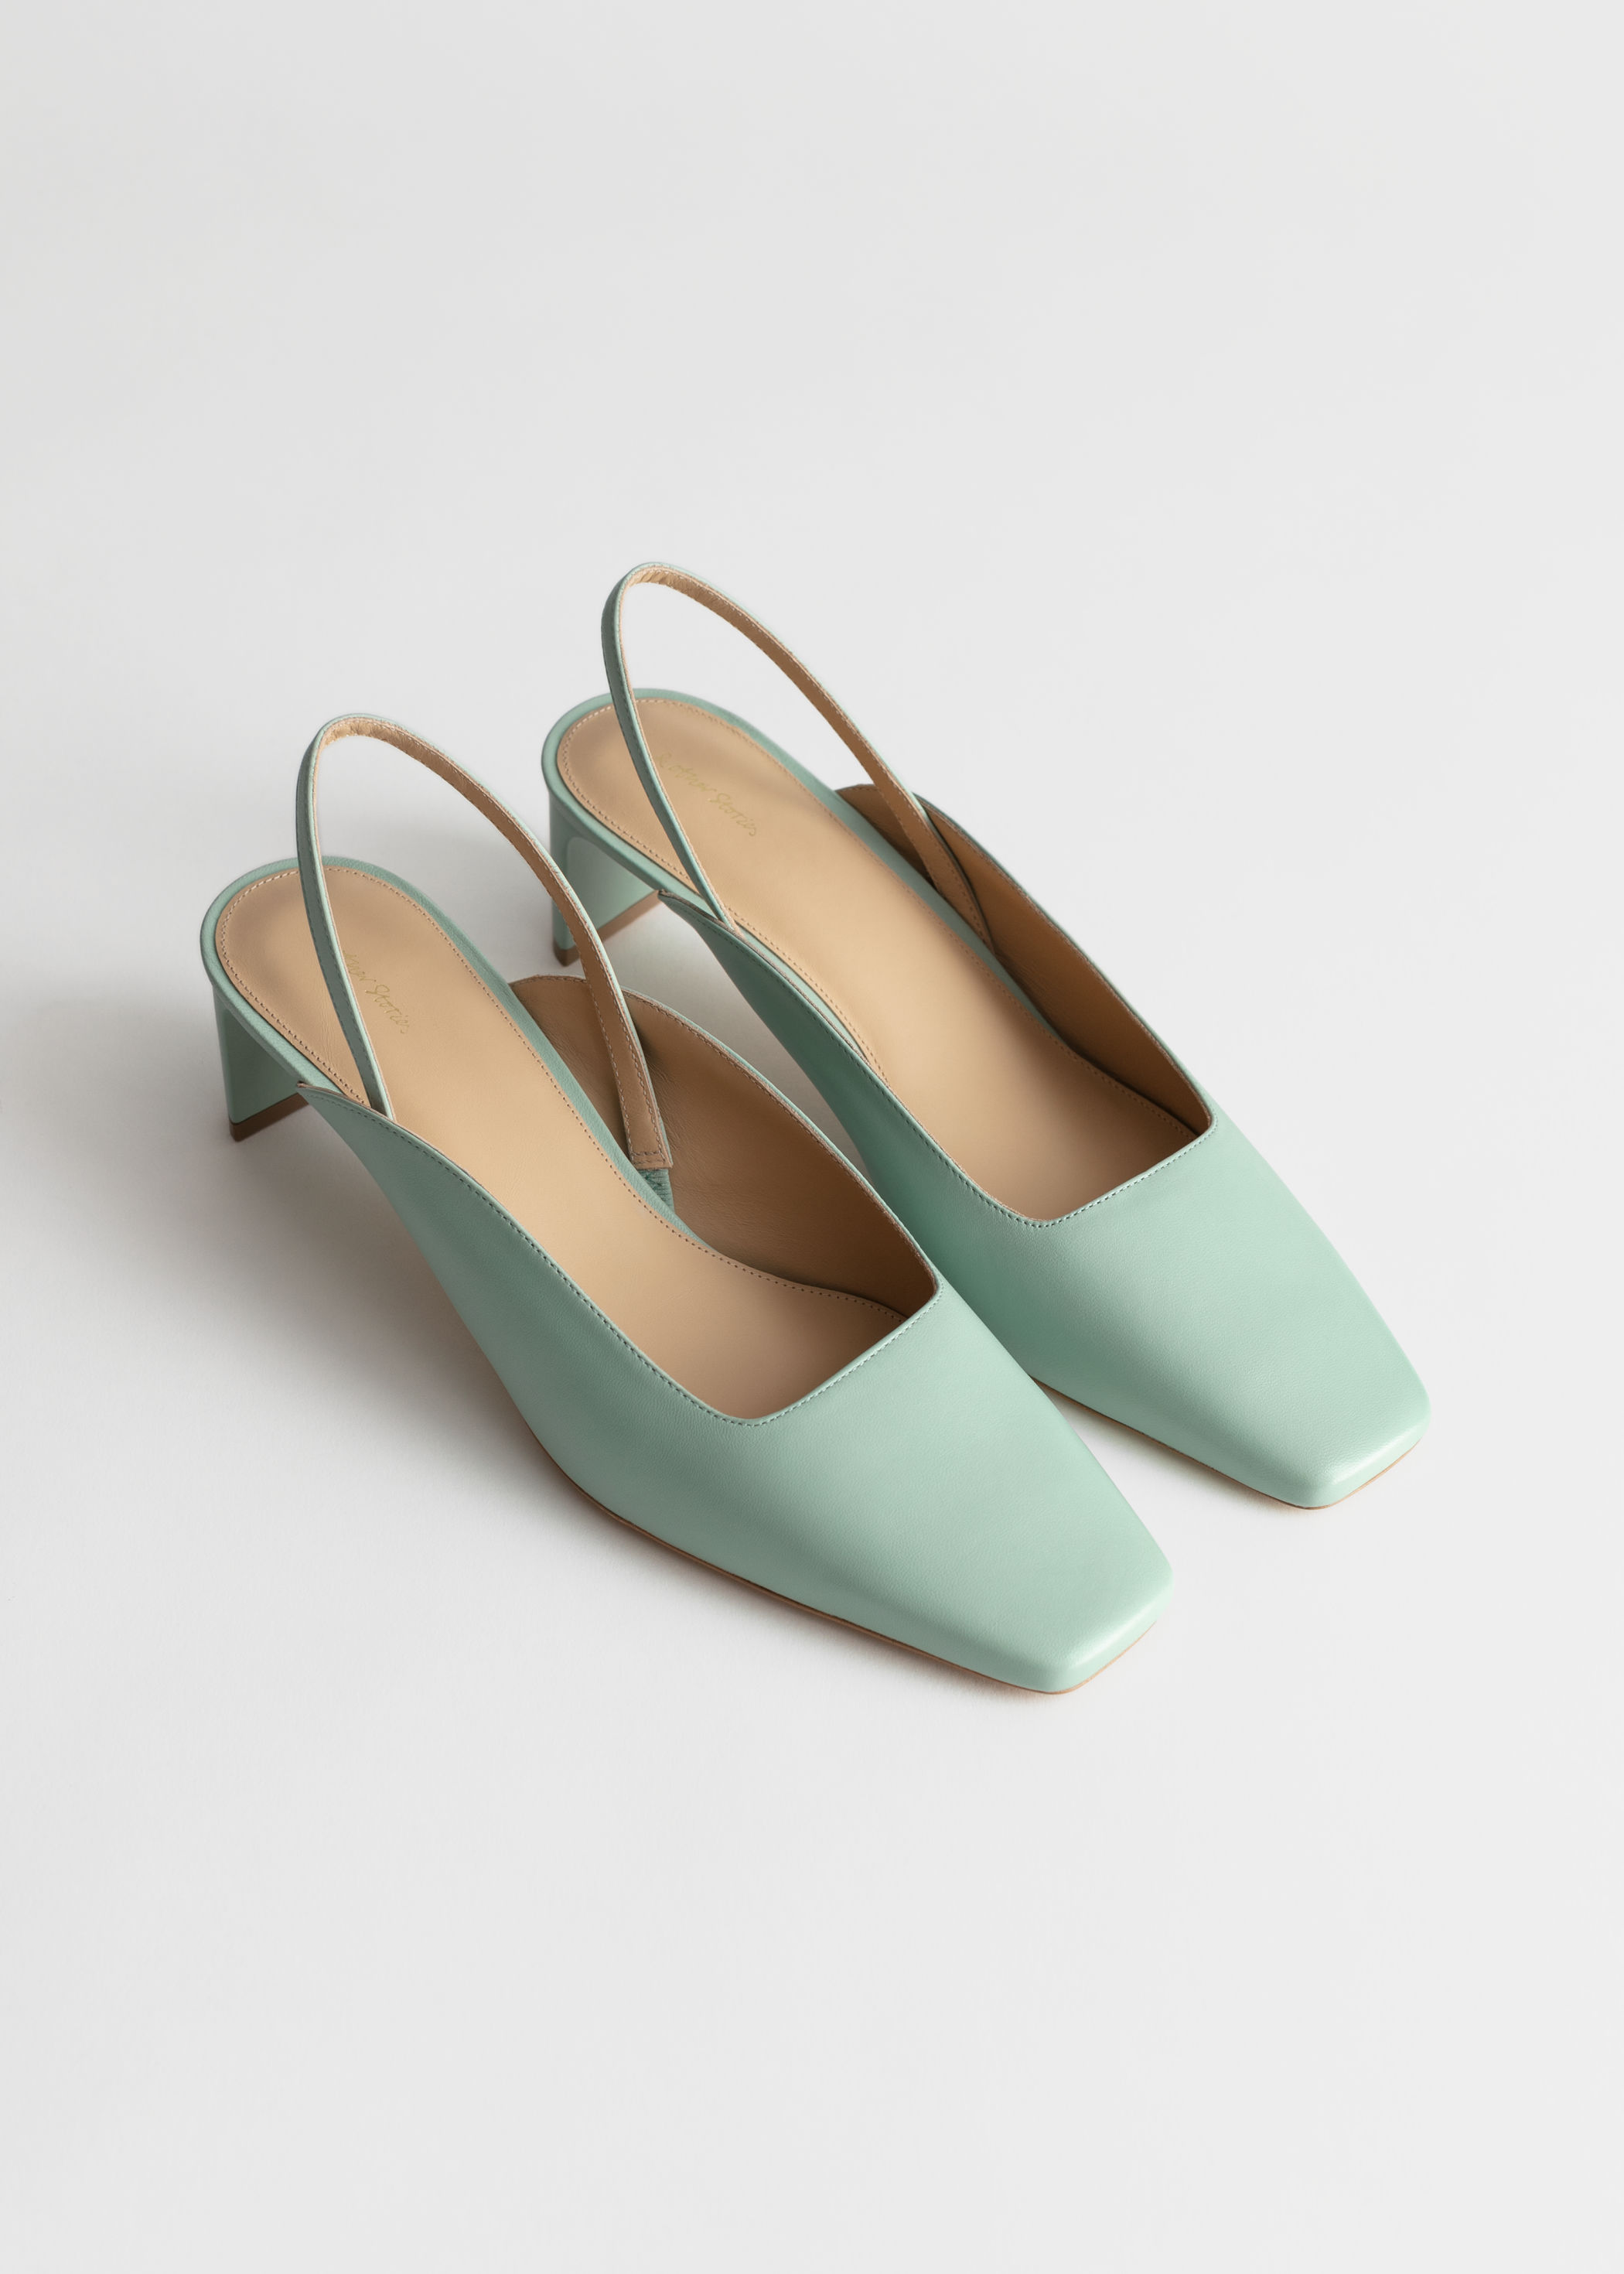 Square Toe Kitten Heel Mules, $129, & Other Stories